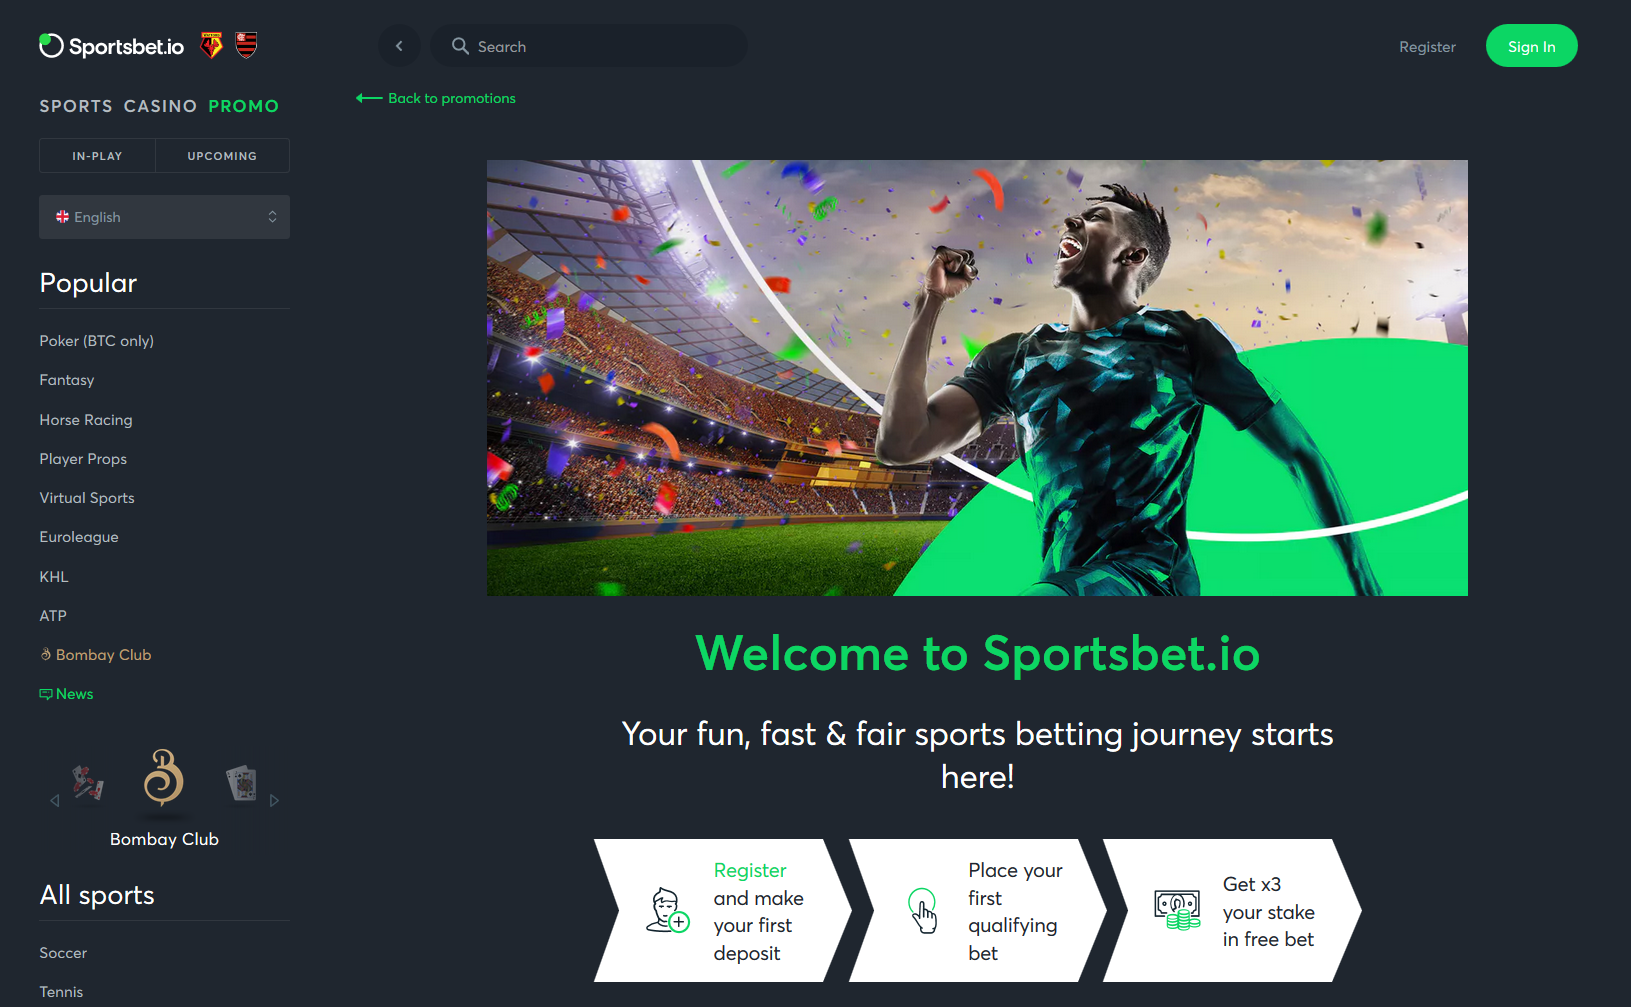 sportsbet.io welcome offer